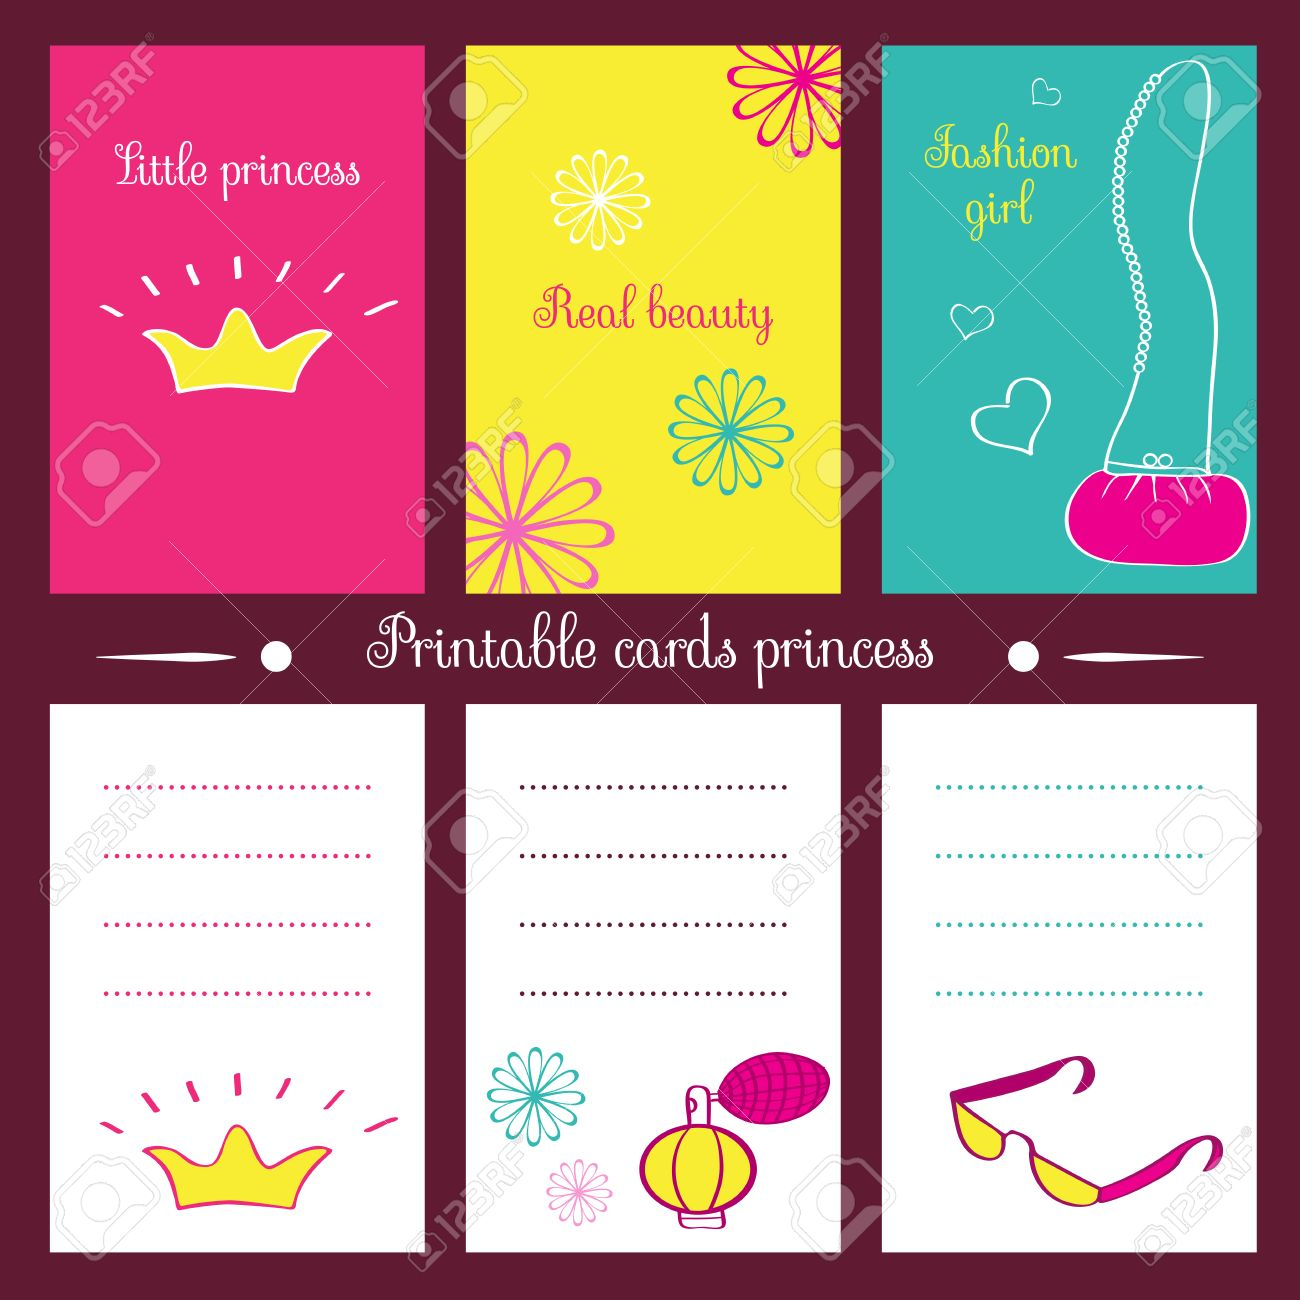 photo about Printable Notepads titled Printable playing cards princess. By yourself can print playing cards, notepads and a..